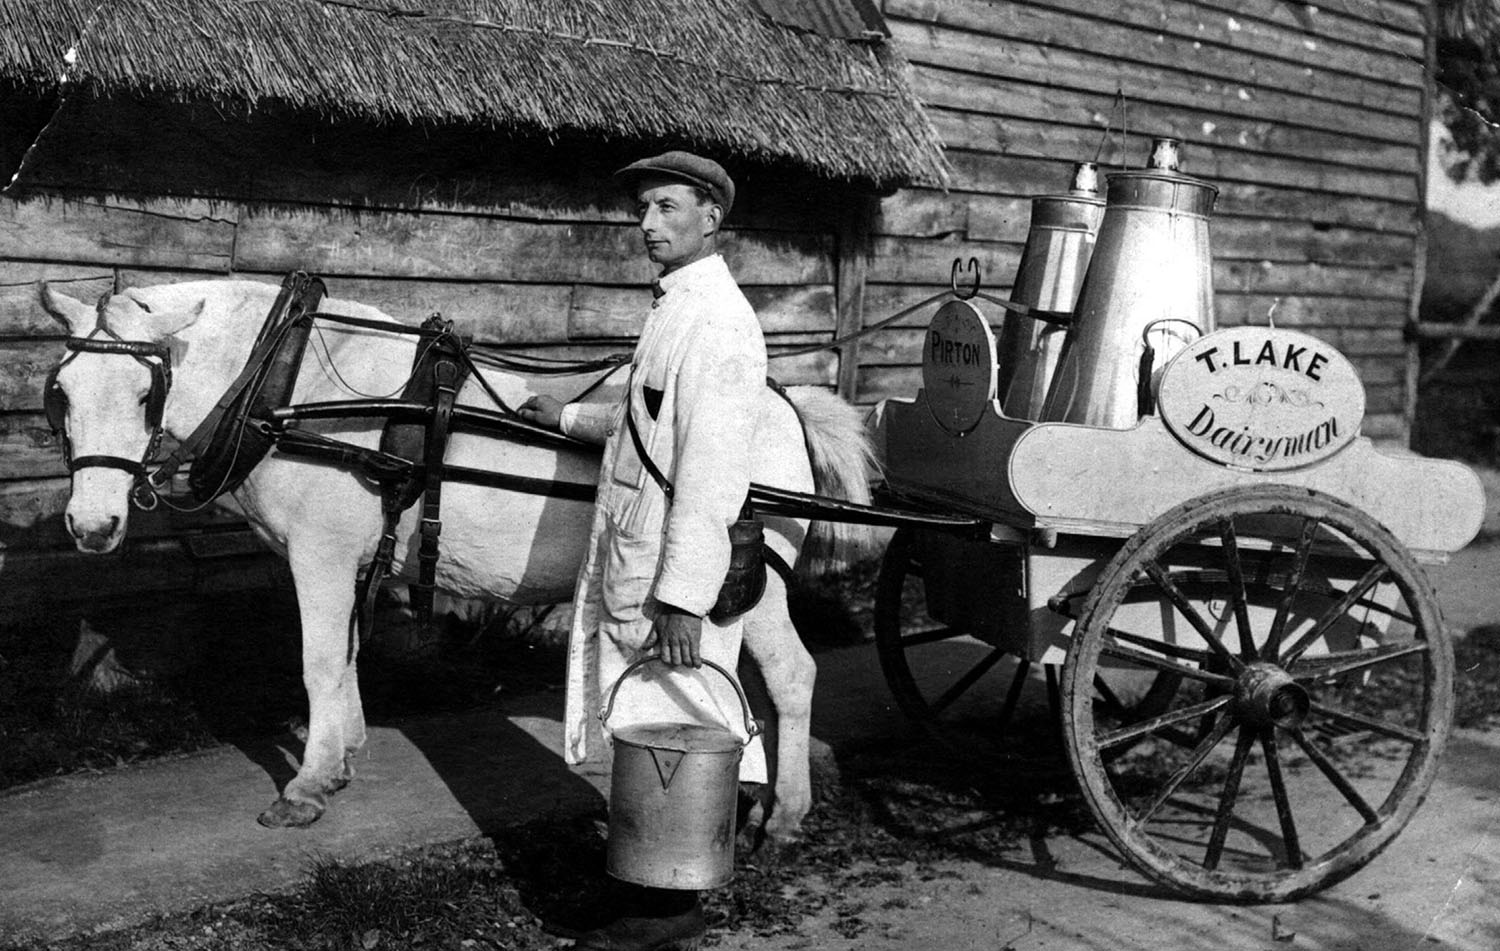 "1926 Tom Lake, Pirton's first milkman, with his churns, pails and measuring jugs. He delivered milk twice a day as there were no fridges to keep milk cool. Milk was ""straight from the cow"" and was not pasteurised as is now required by health legislation."